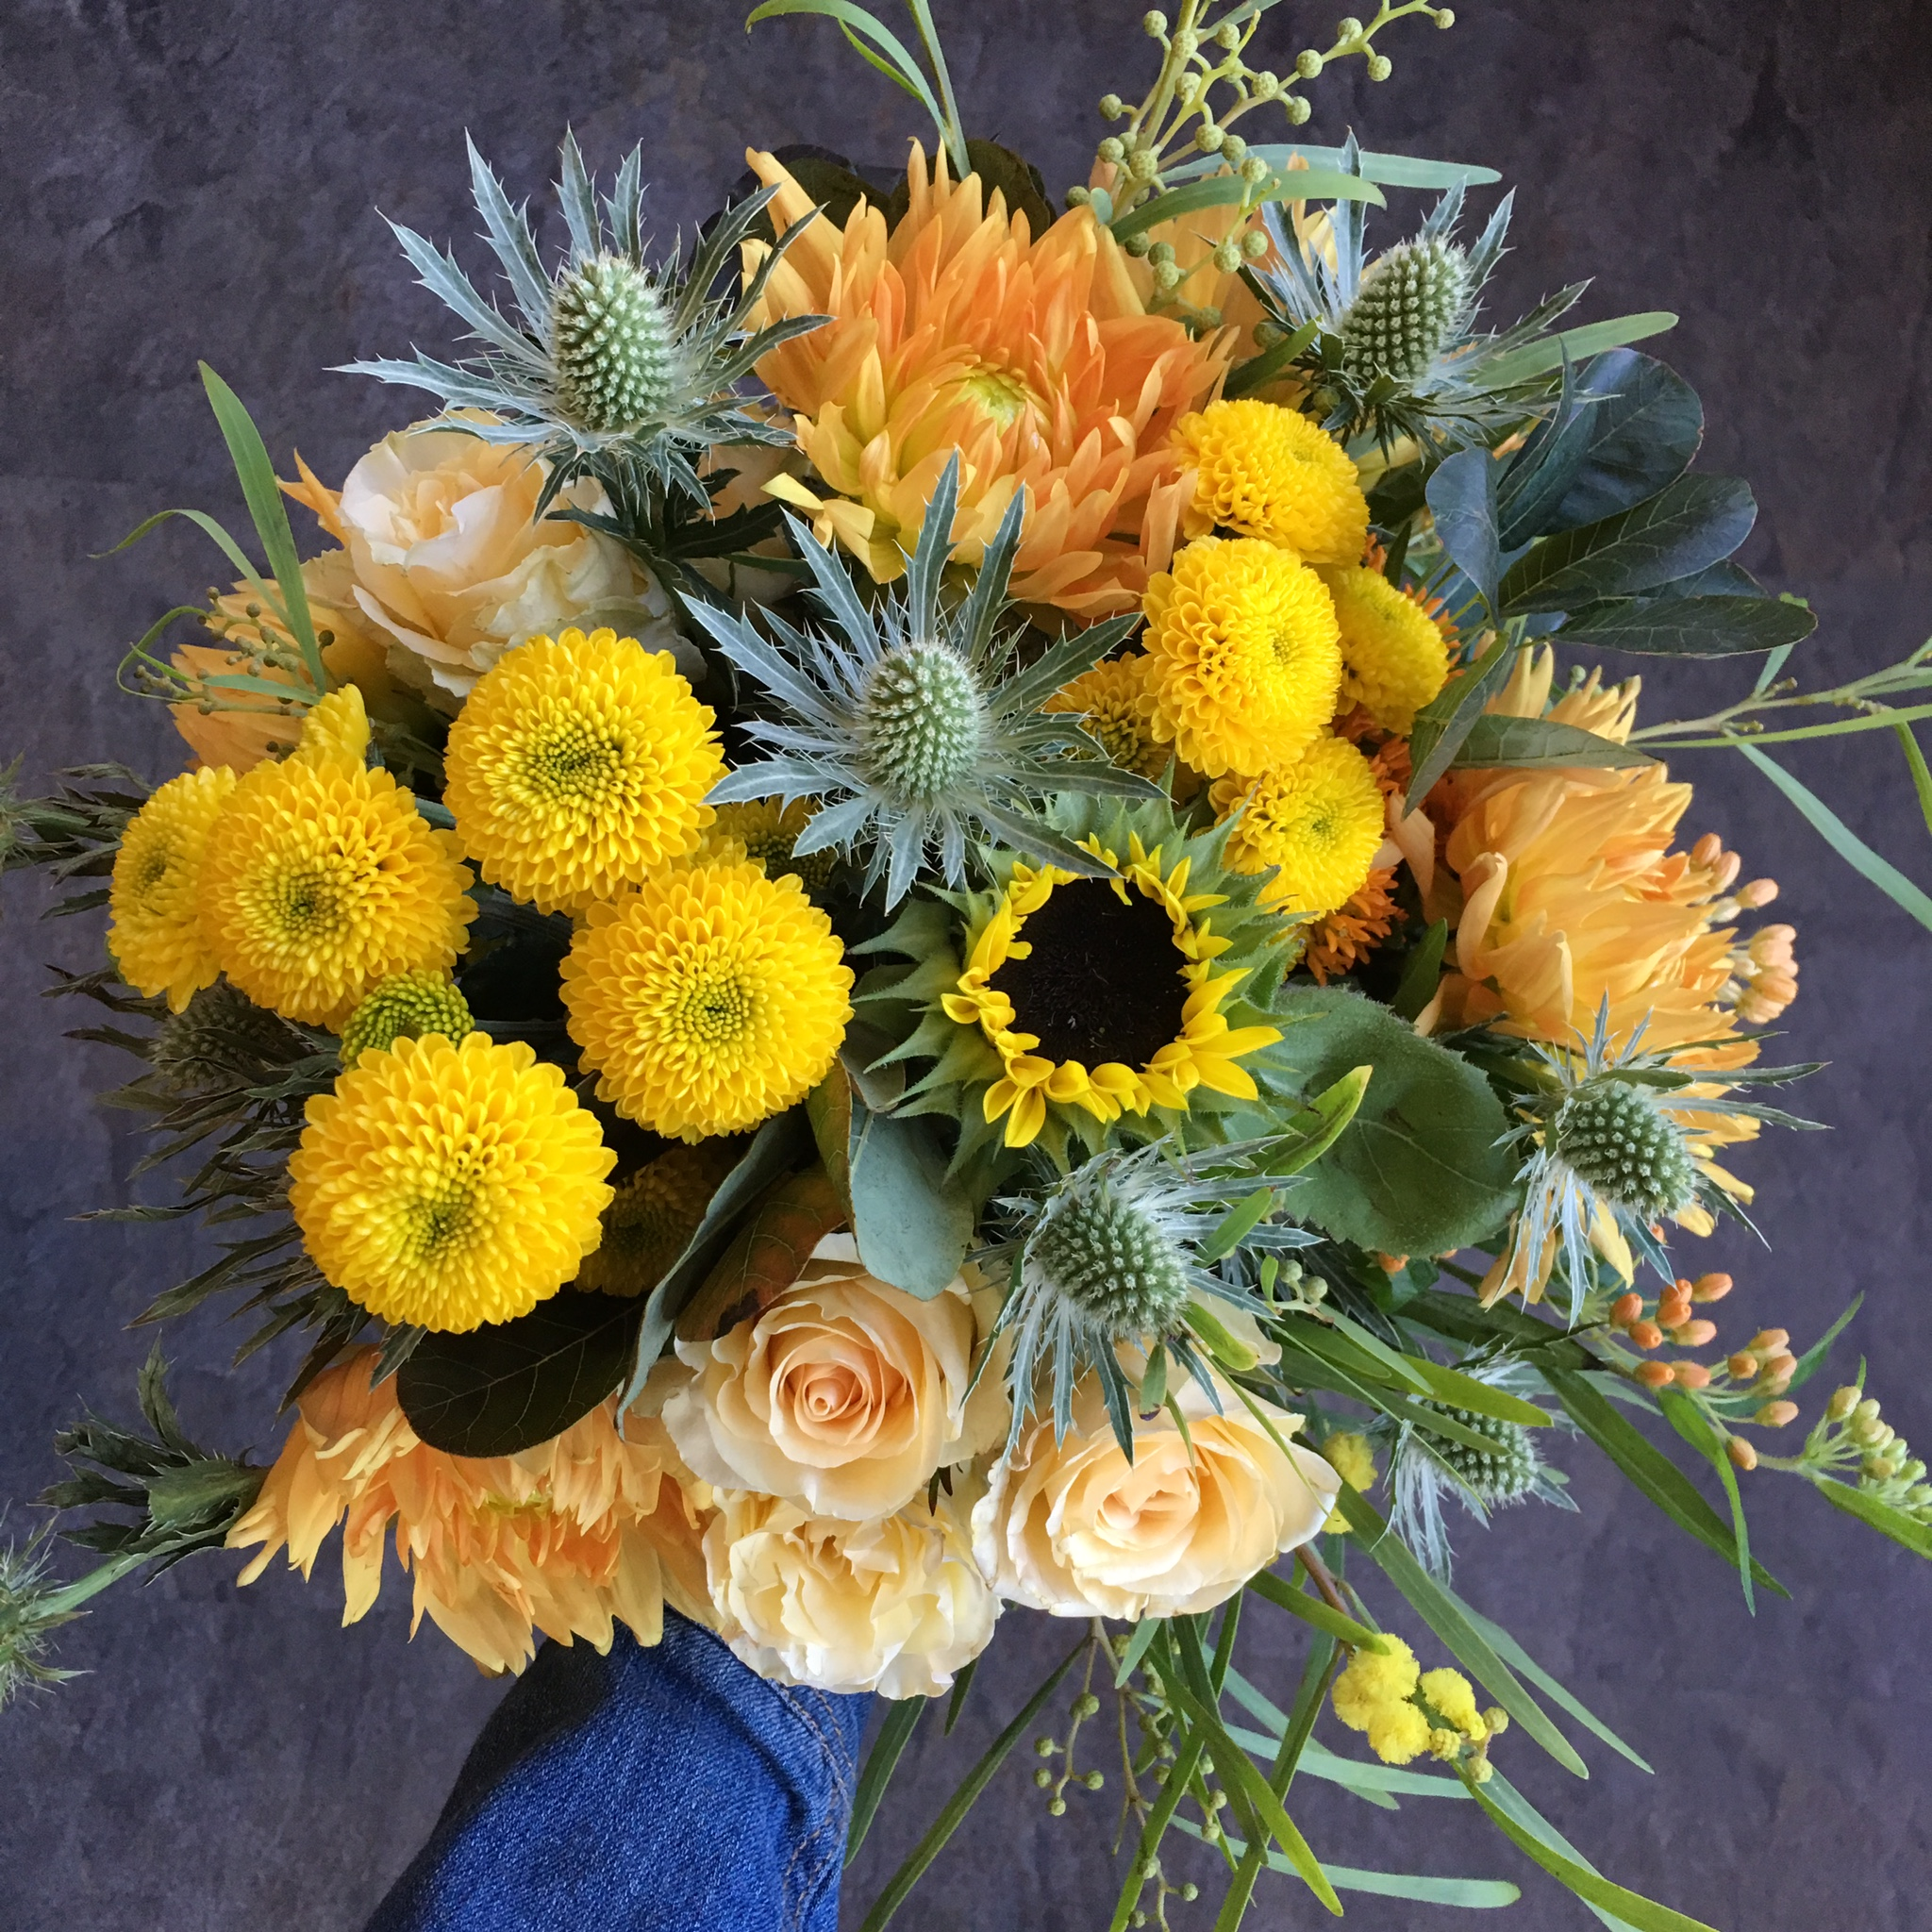 Yellow and apricot hand-tied bouquet